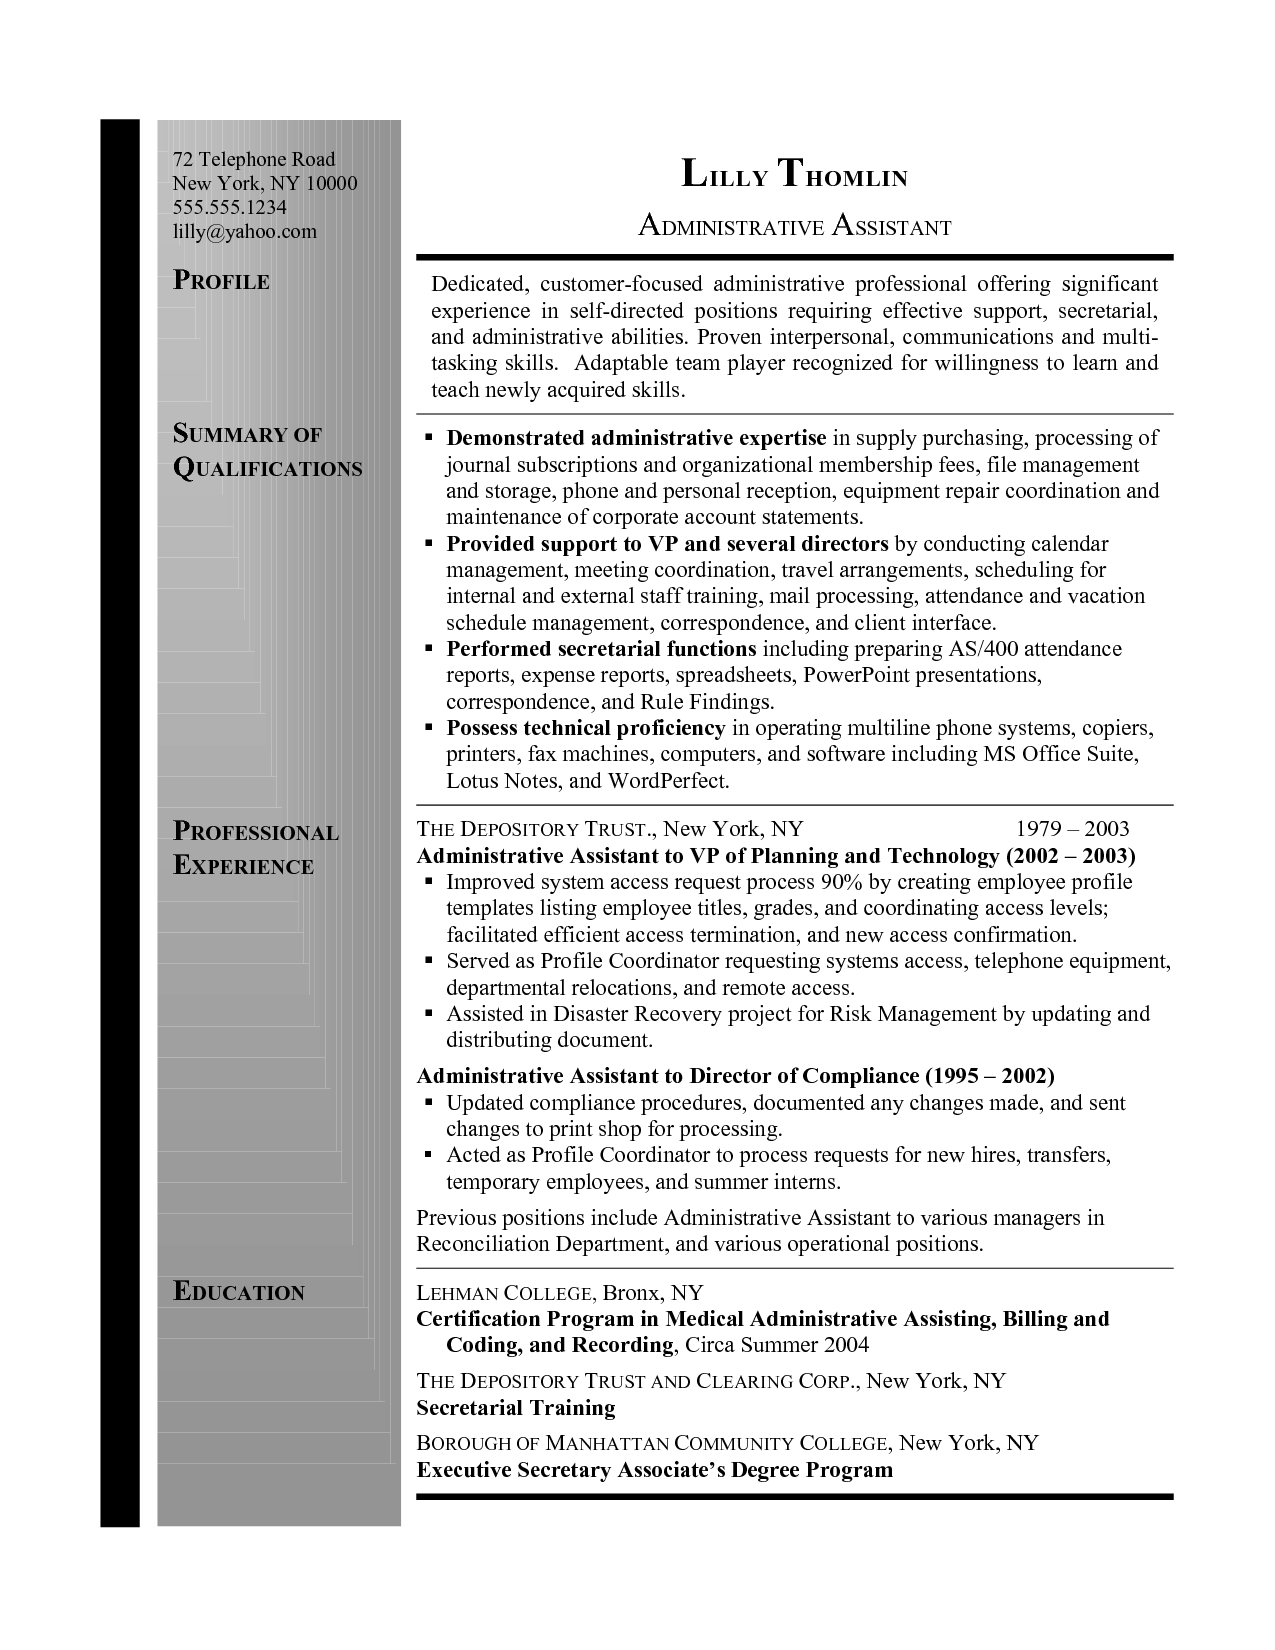 Resume Summary Administrative Assistant Resume Info Pinterest